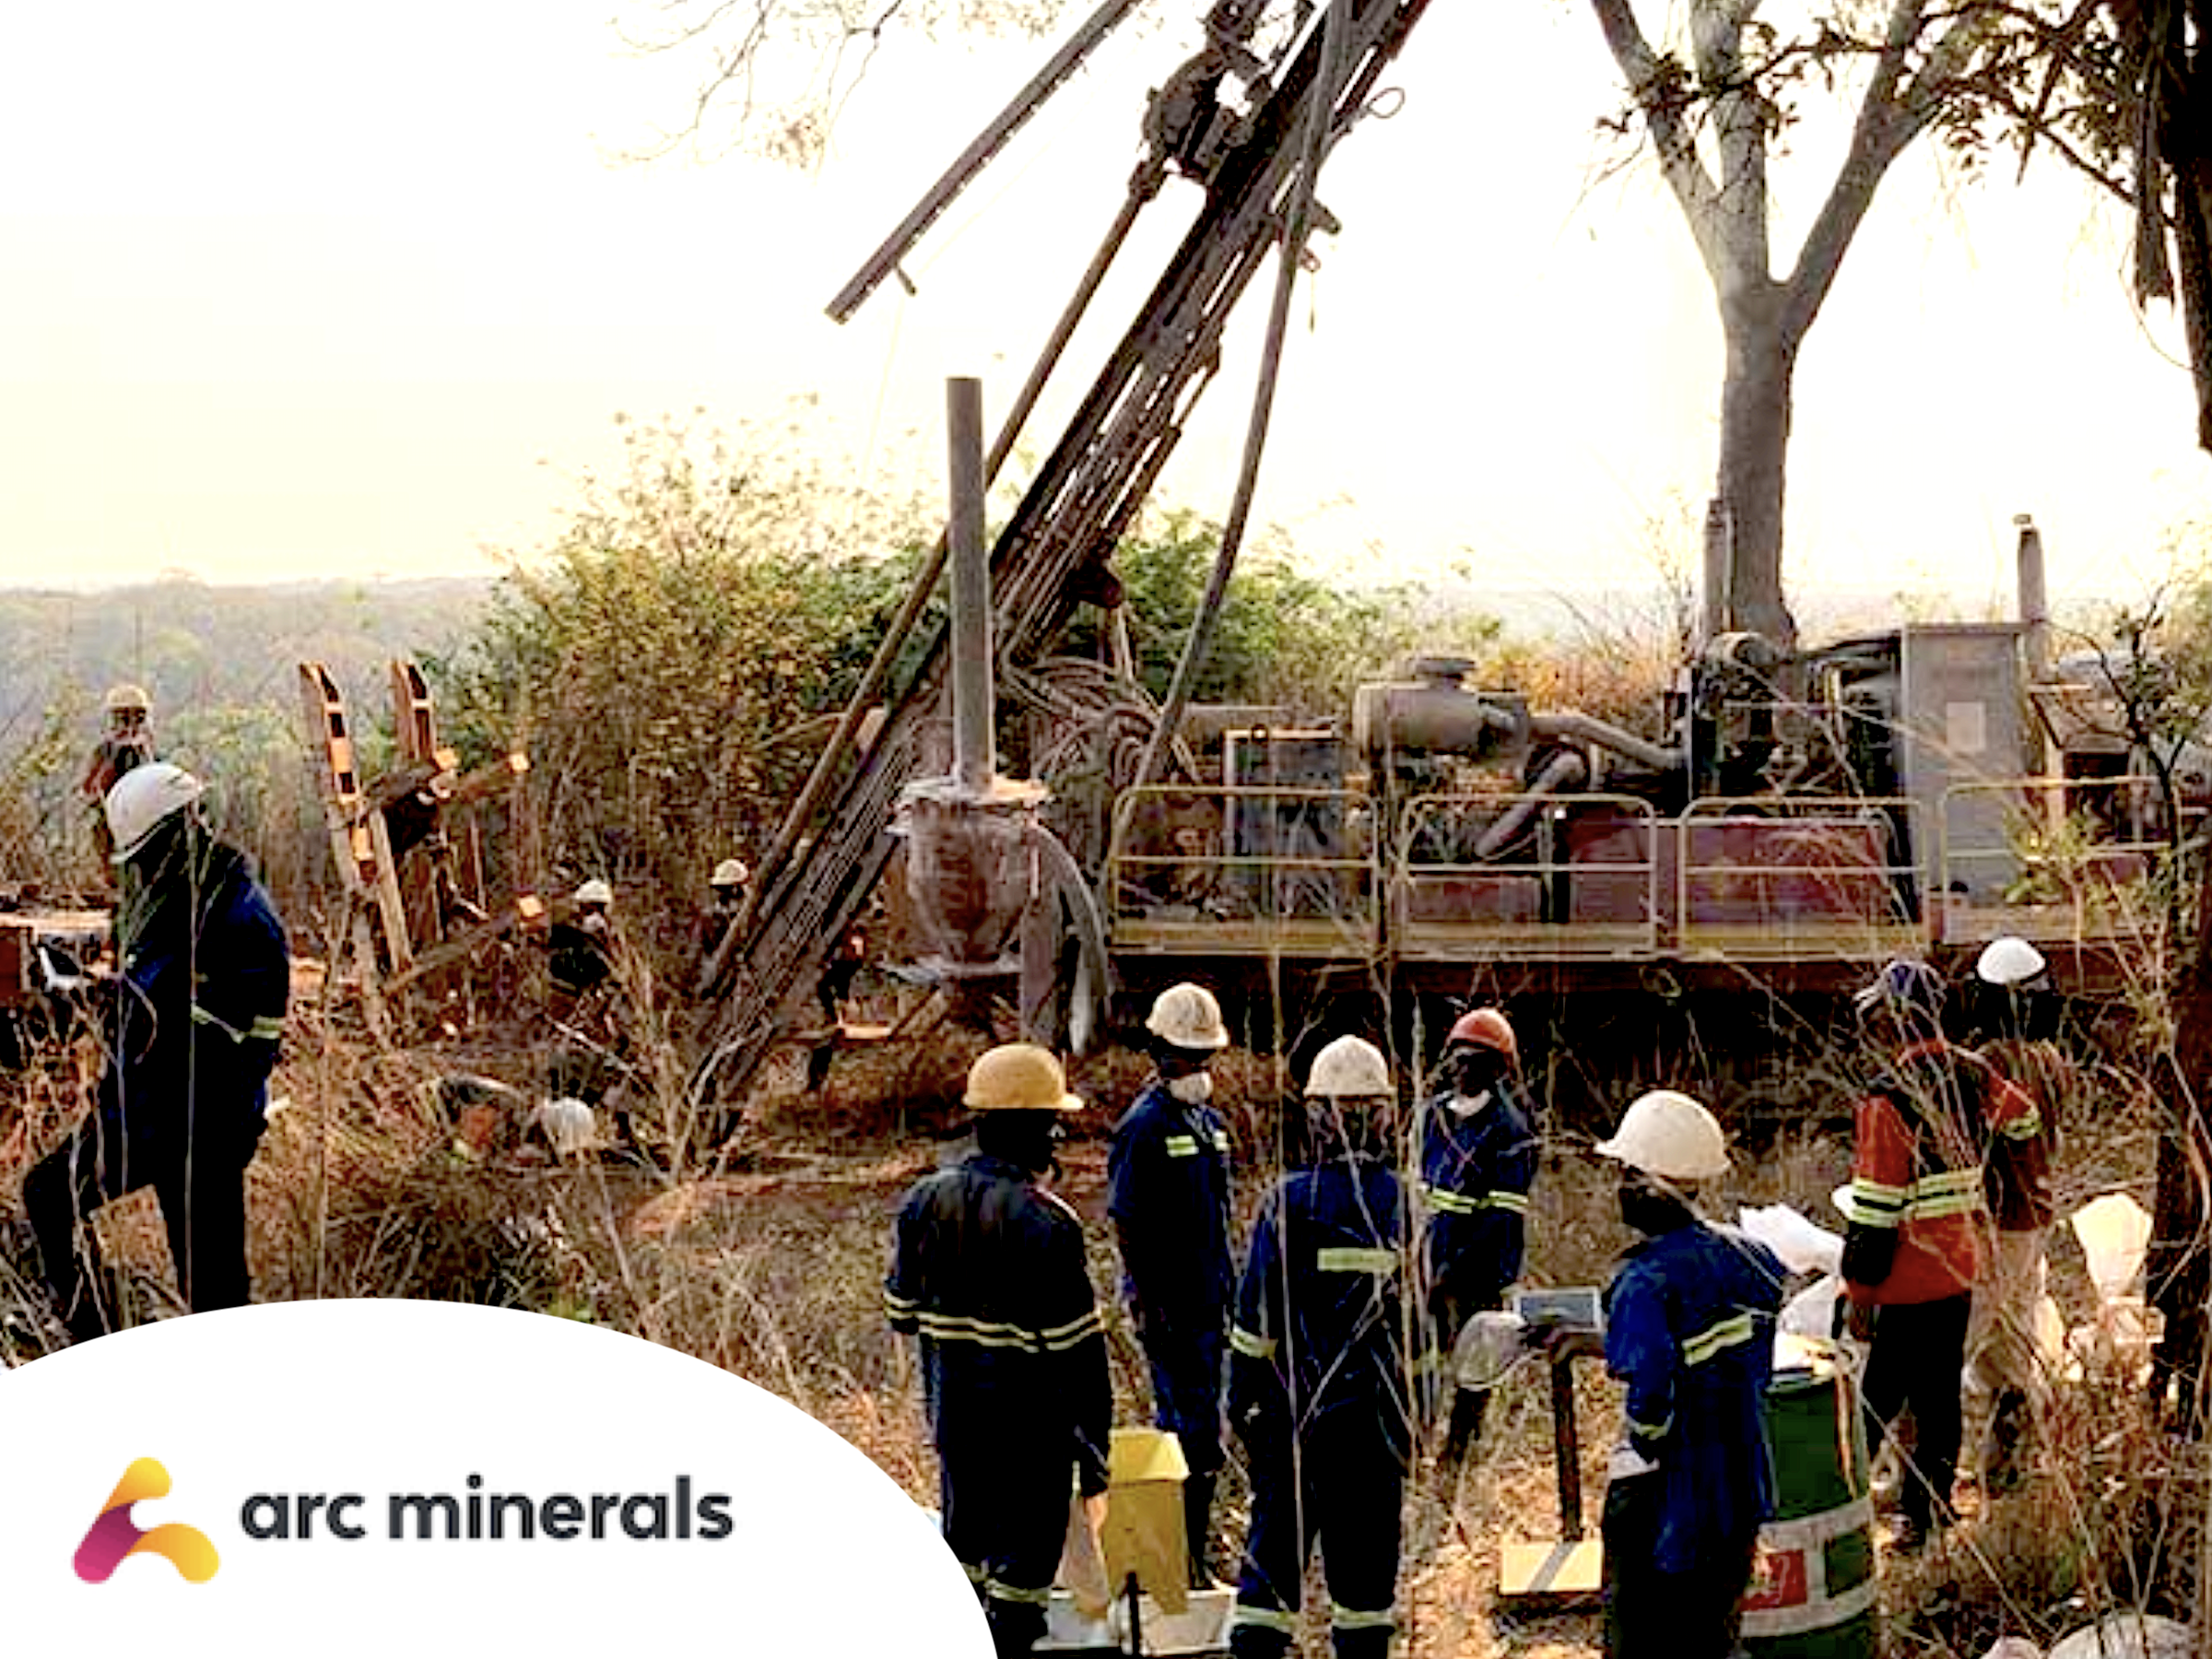 Arc Minerals raises £2m in placing backed by institutions and senior management (ARCM)